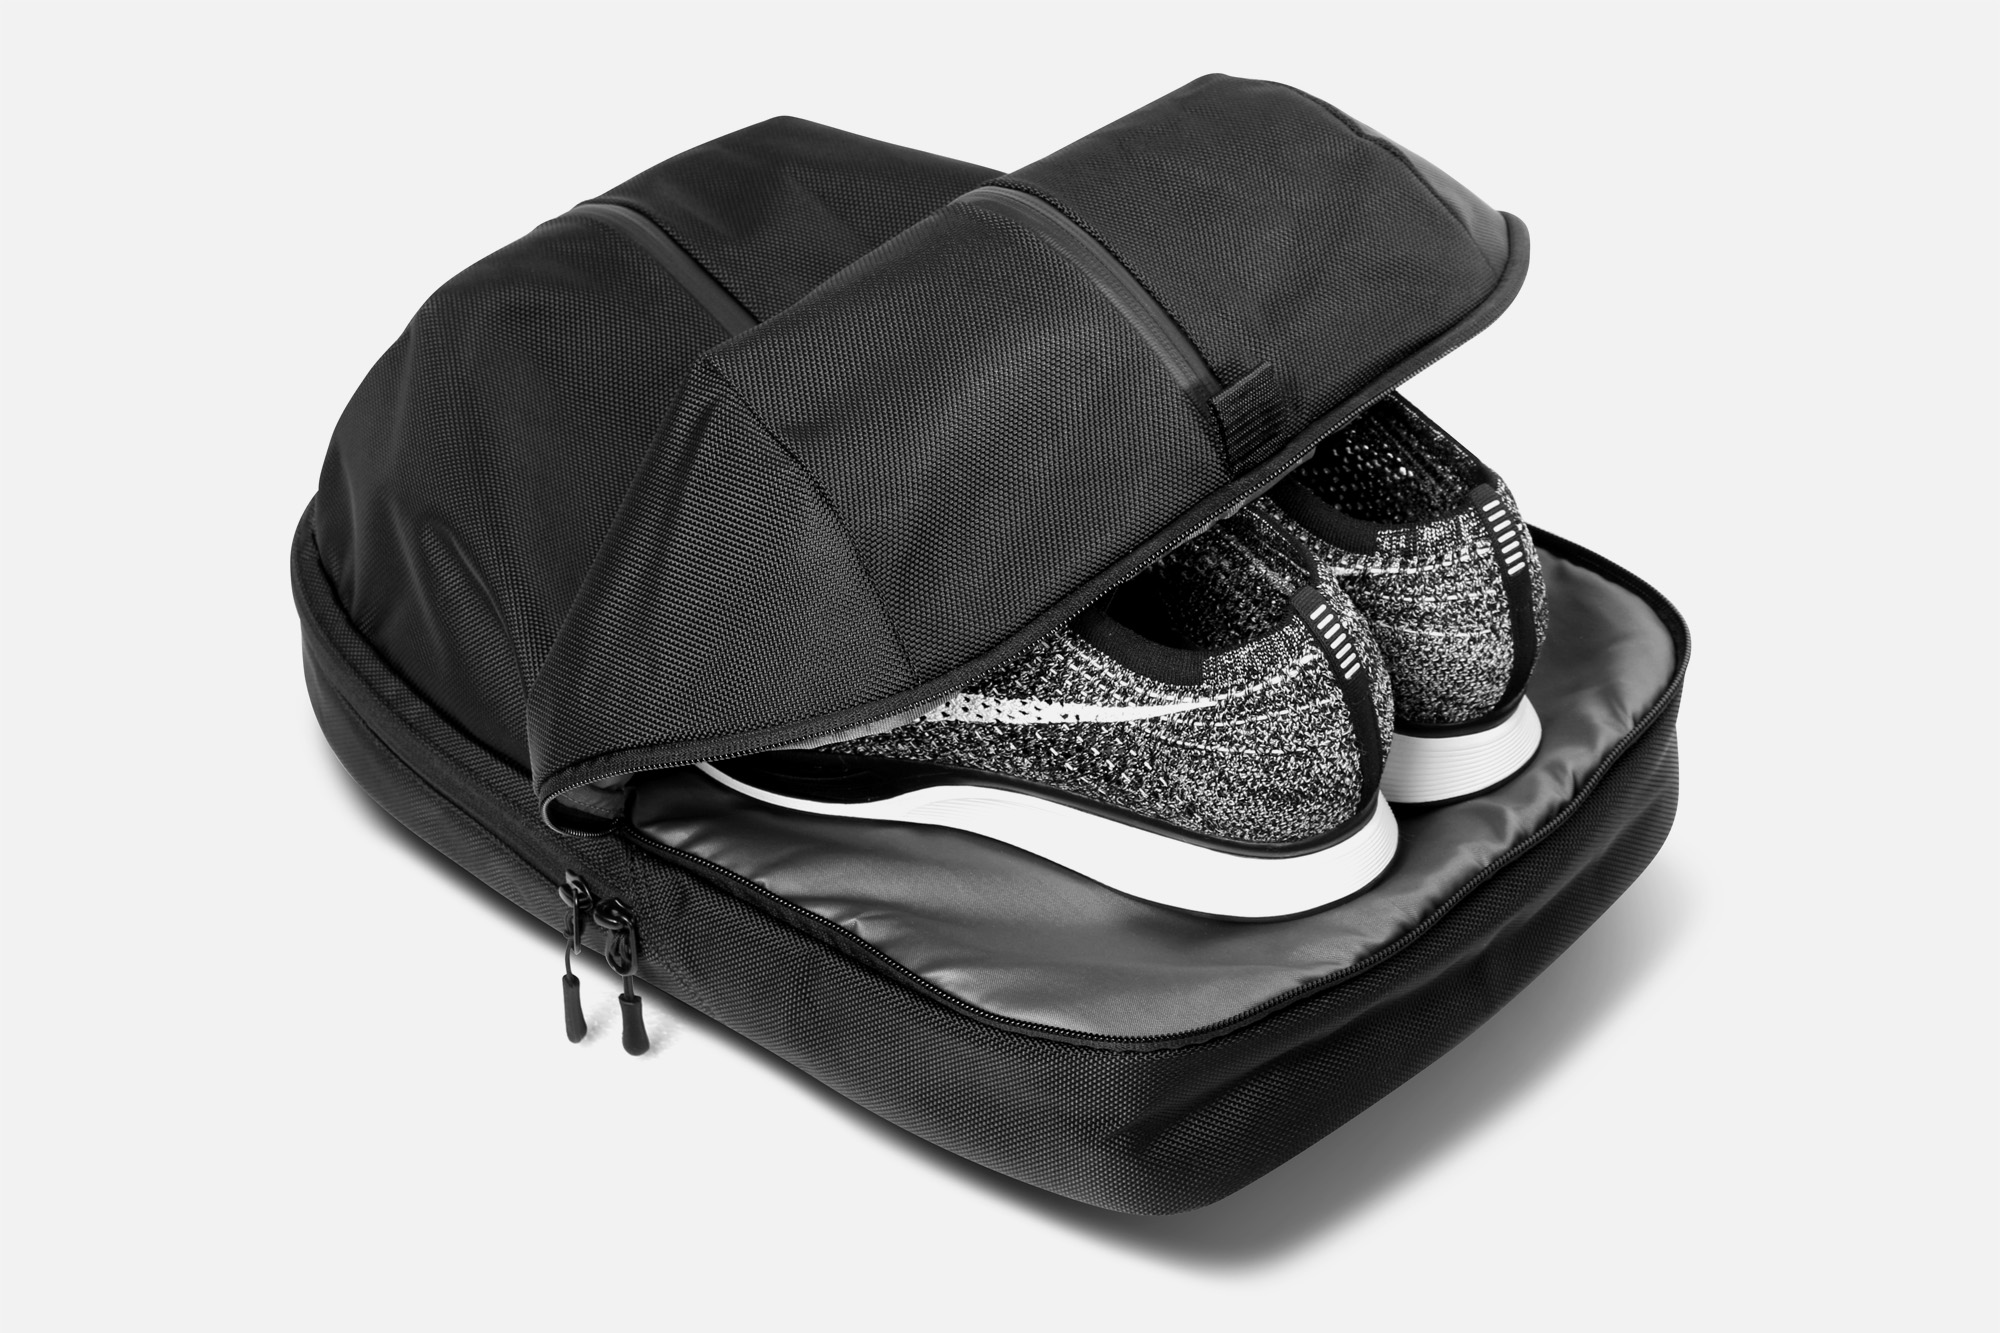 Aer Modern Gym Bags Travel Backpacks